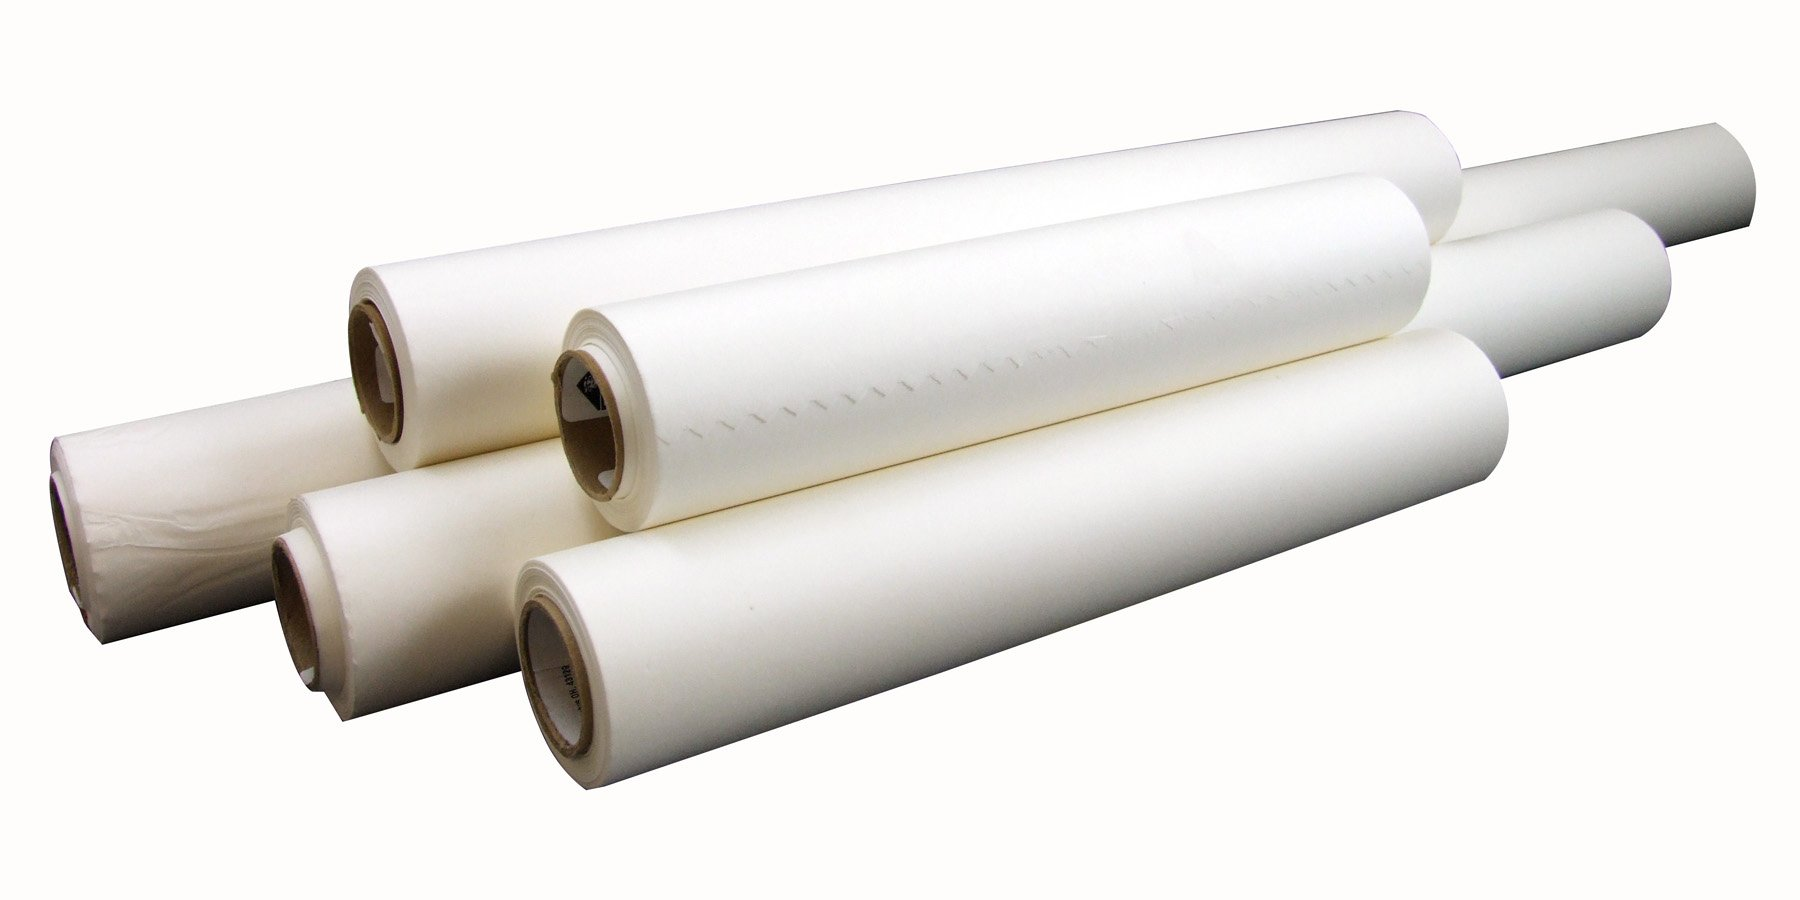 Bienfang 50-Yard by 36-Inch wide Sketching and Tracing Paper Roll by Bienfang